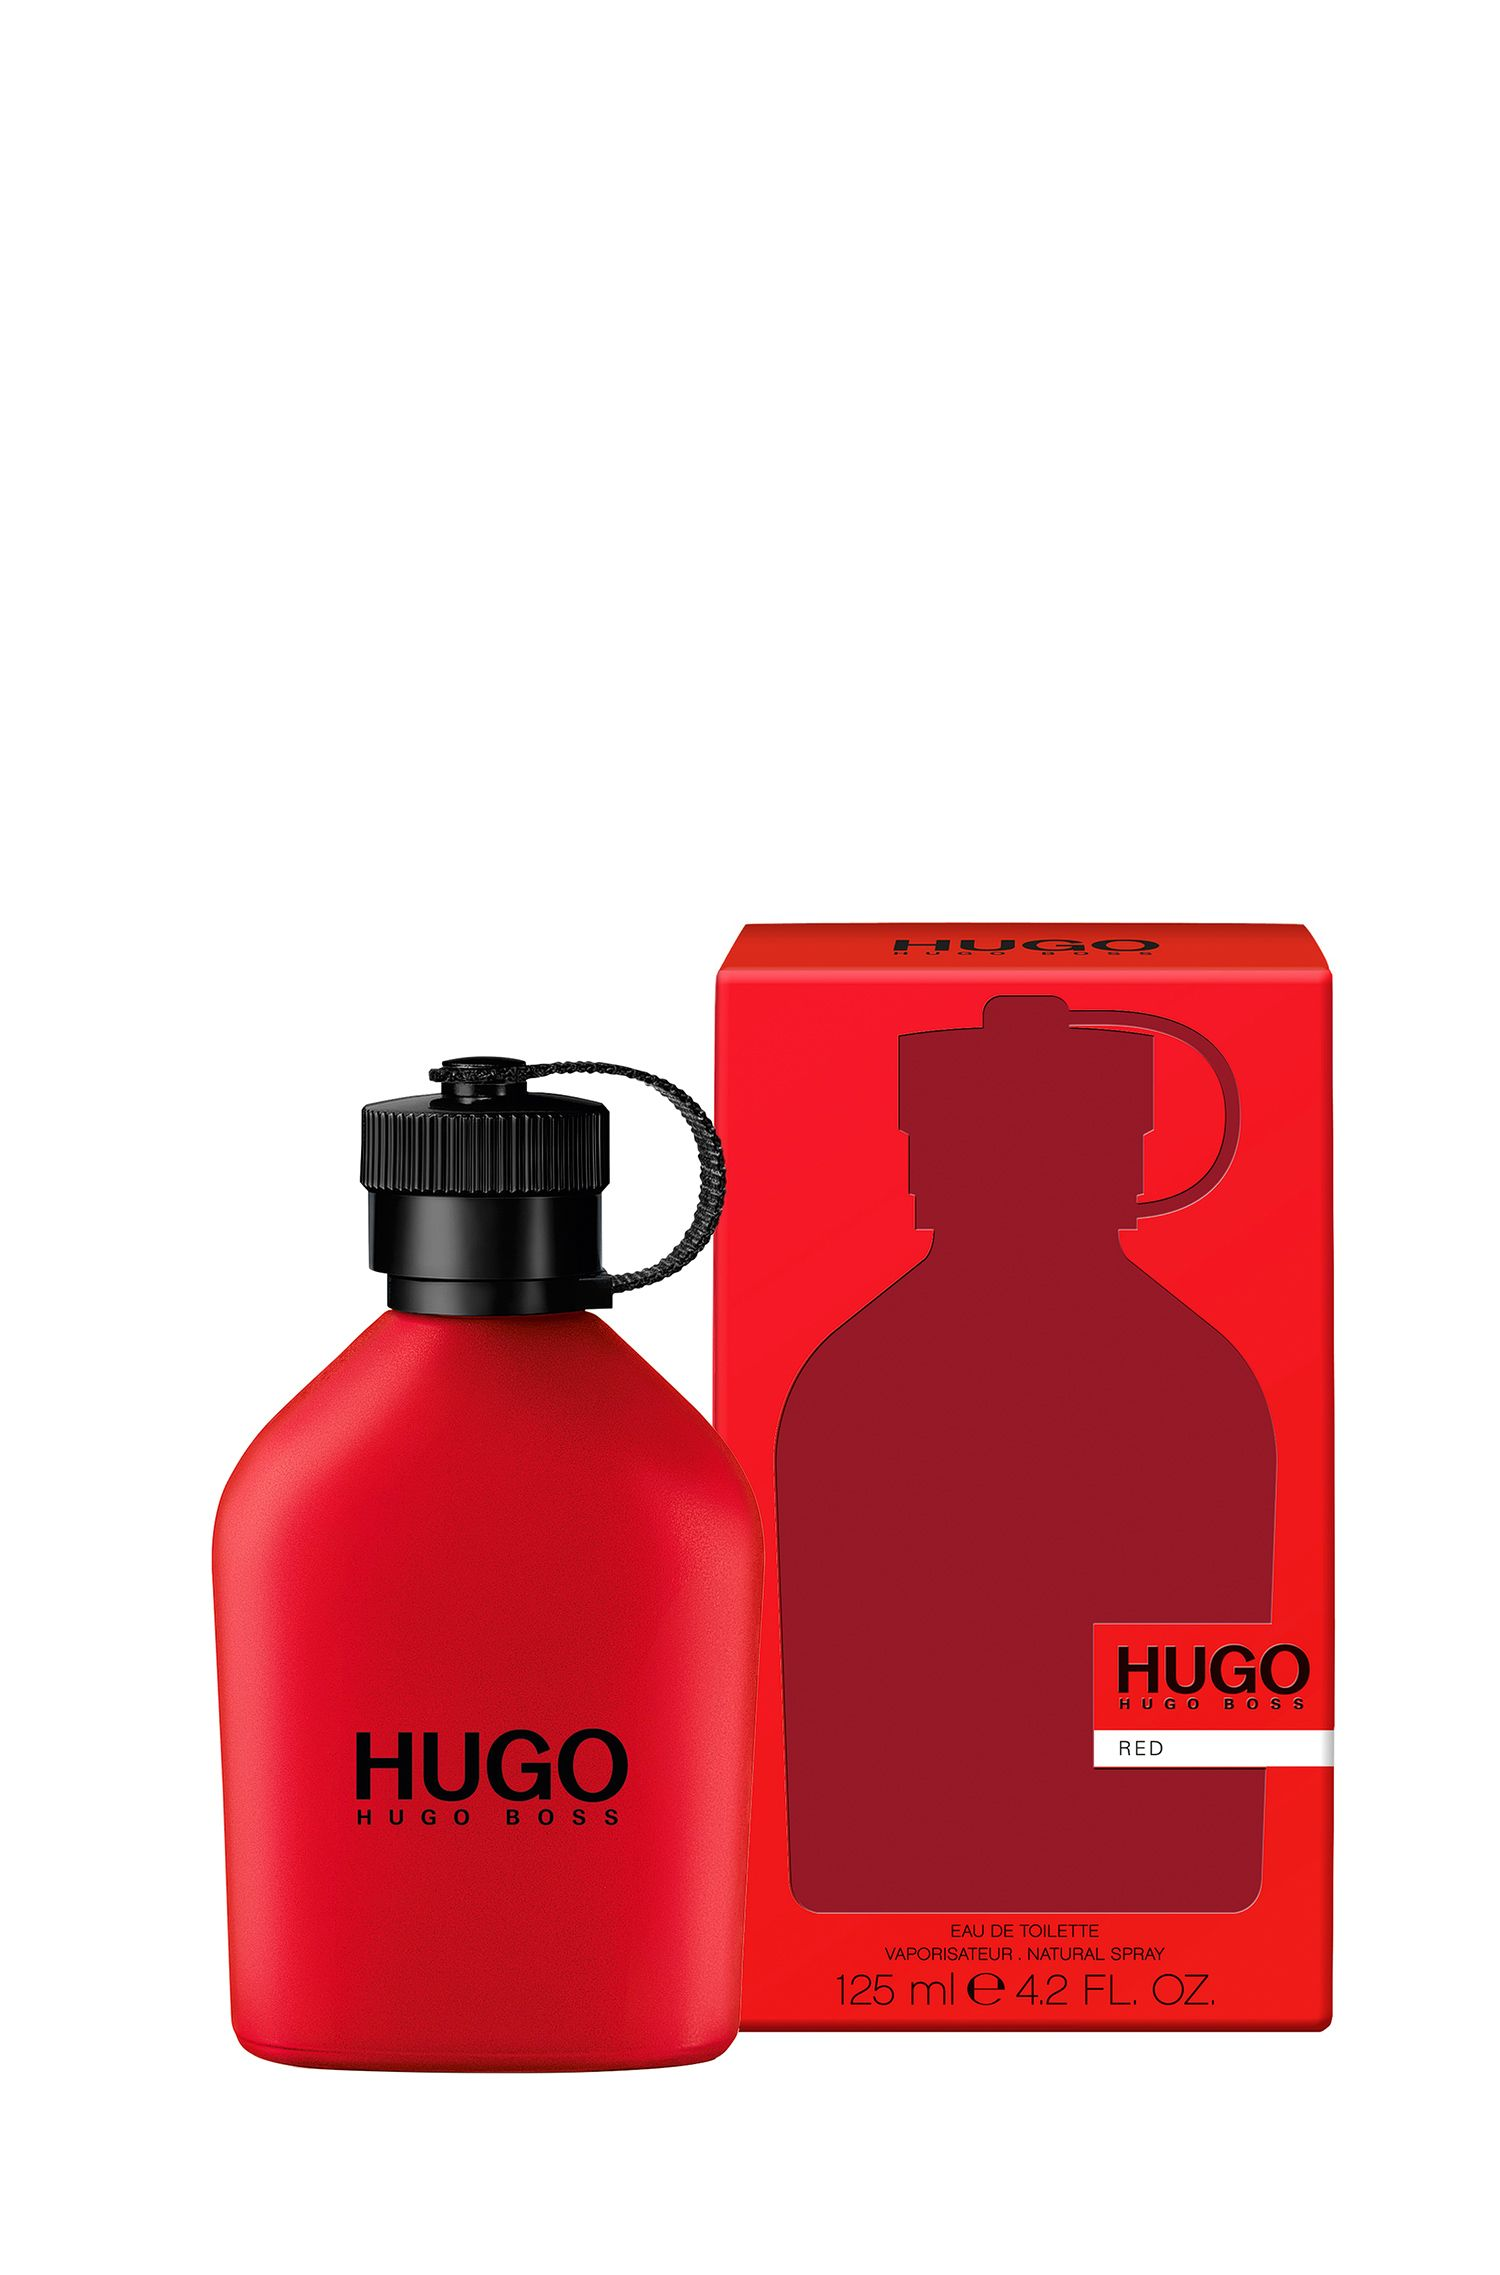 'HUGO Red' Eau de Toilette 125 ml